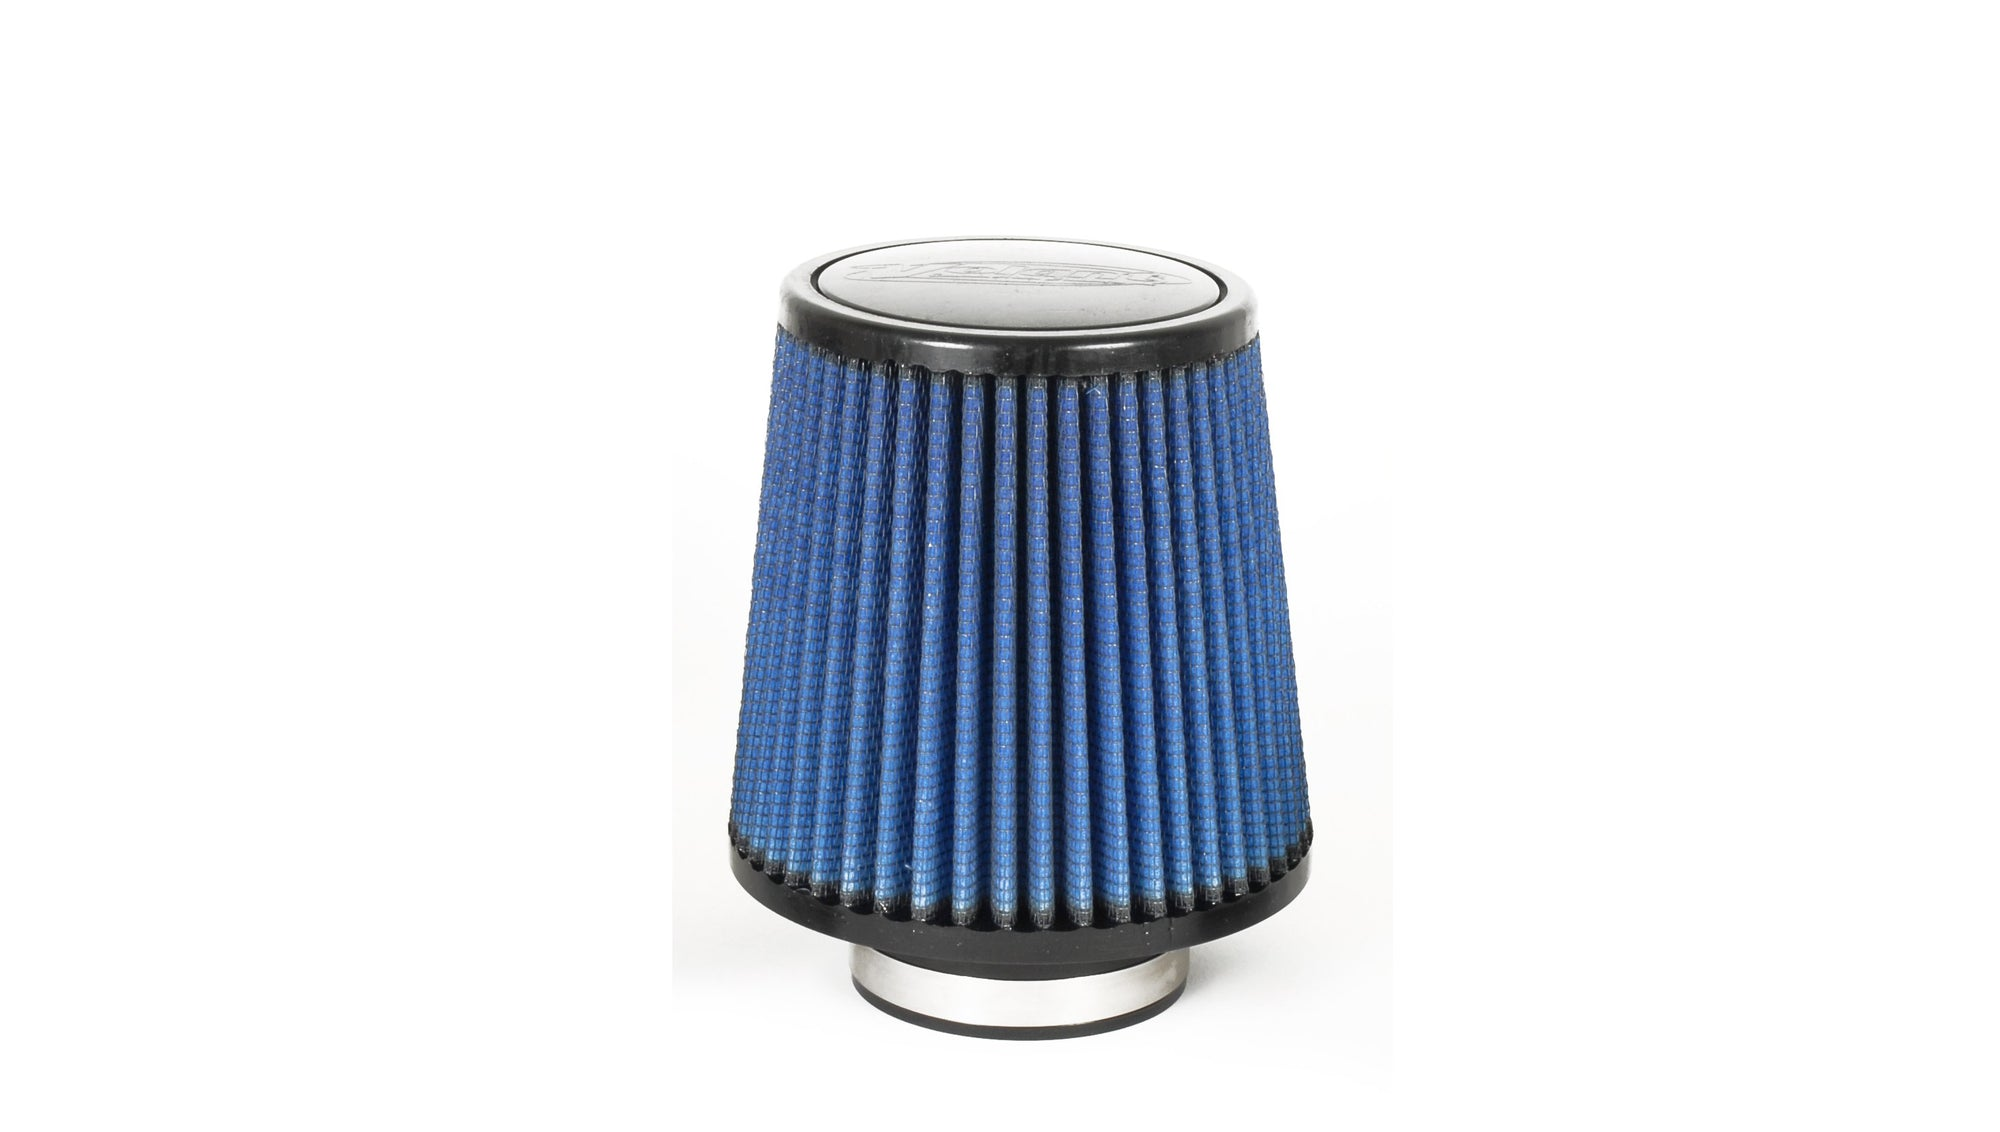 MaxFlow Oiled Air Filter (5129) Replacement Air Filter